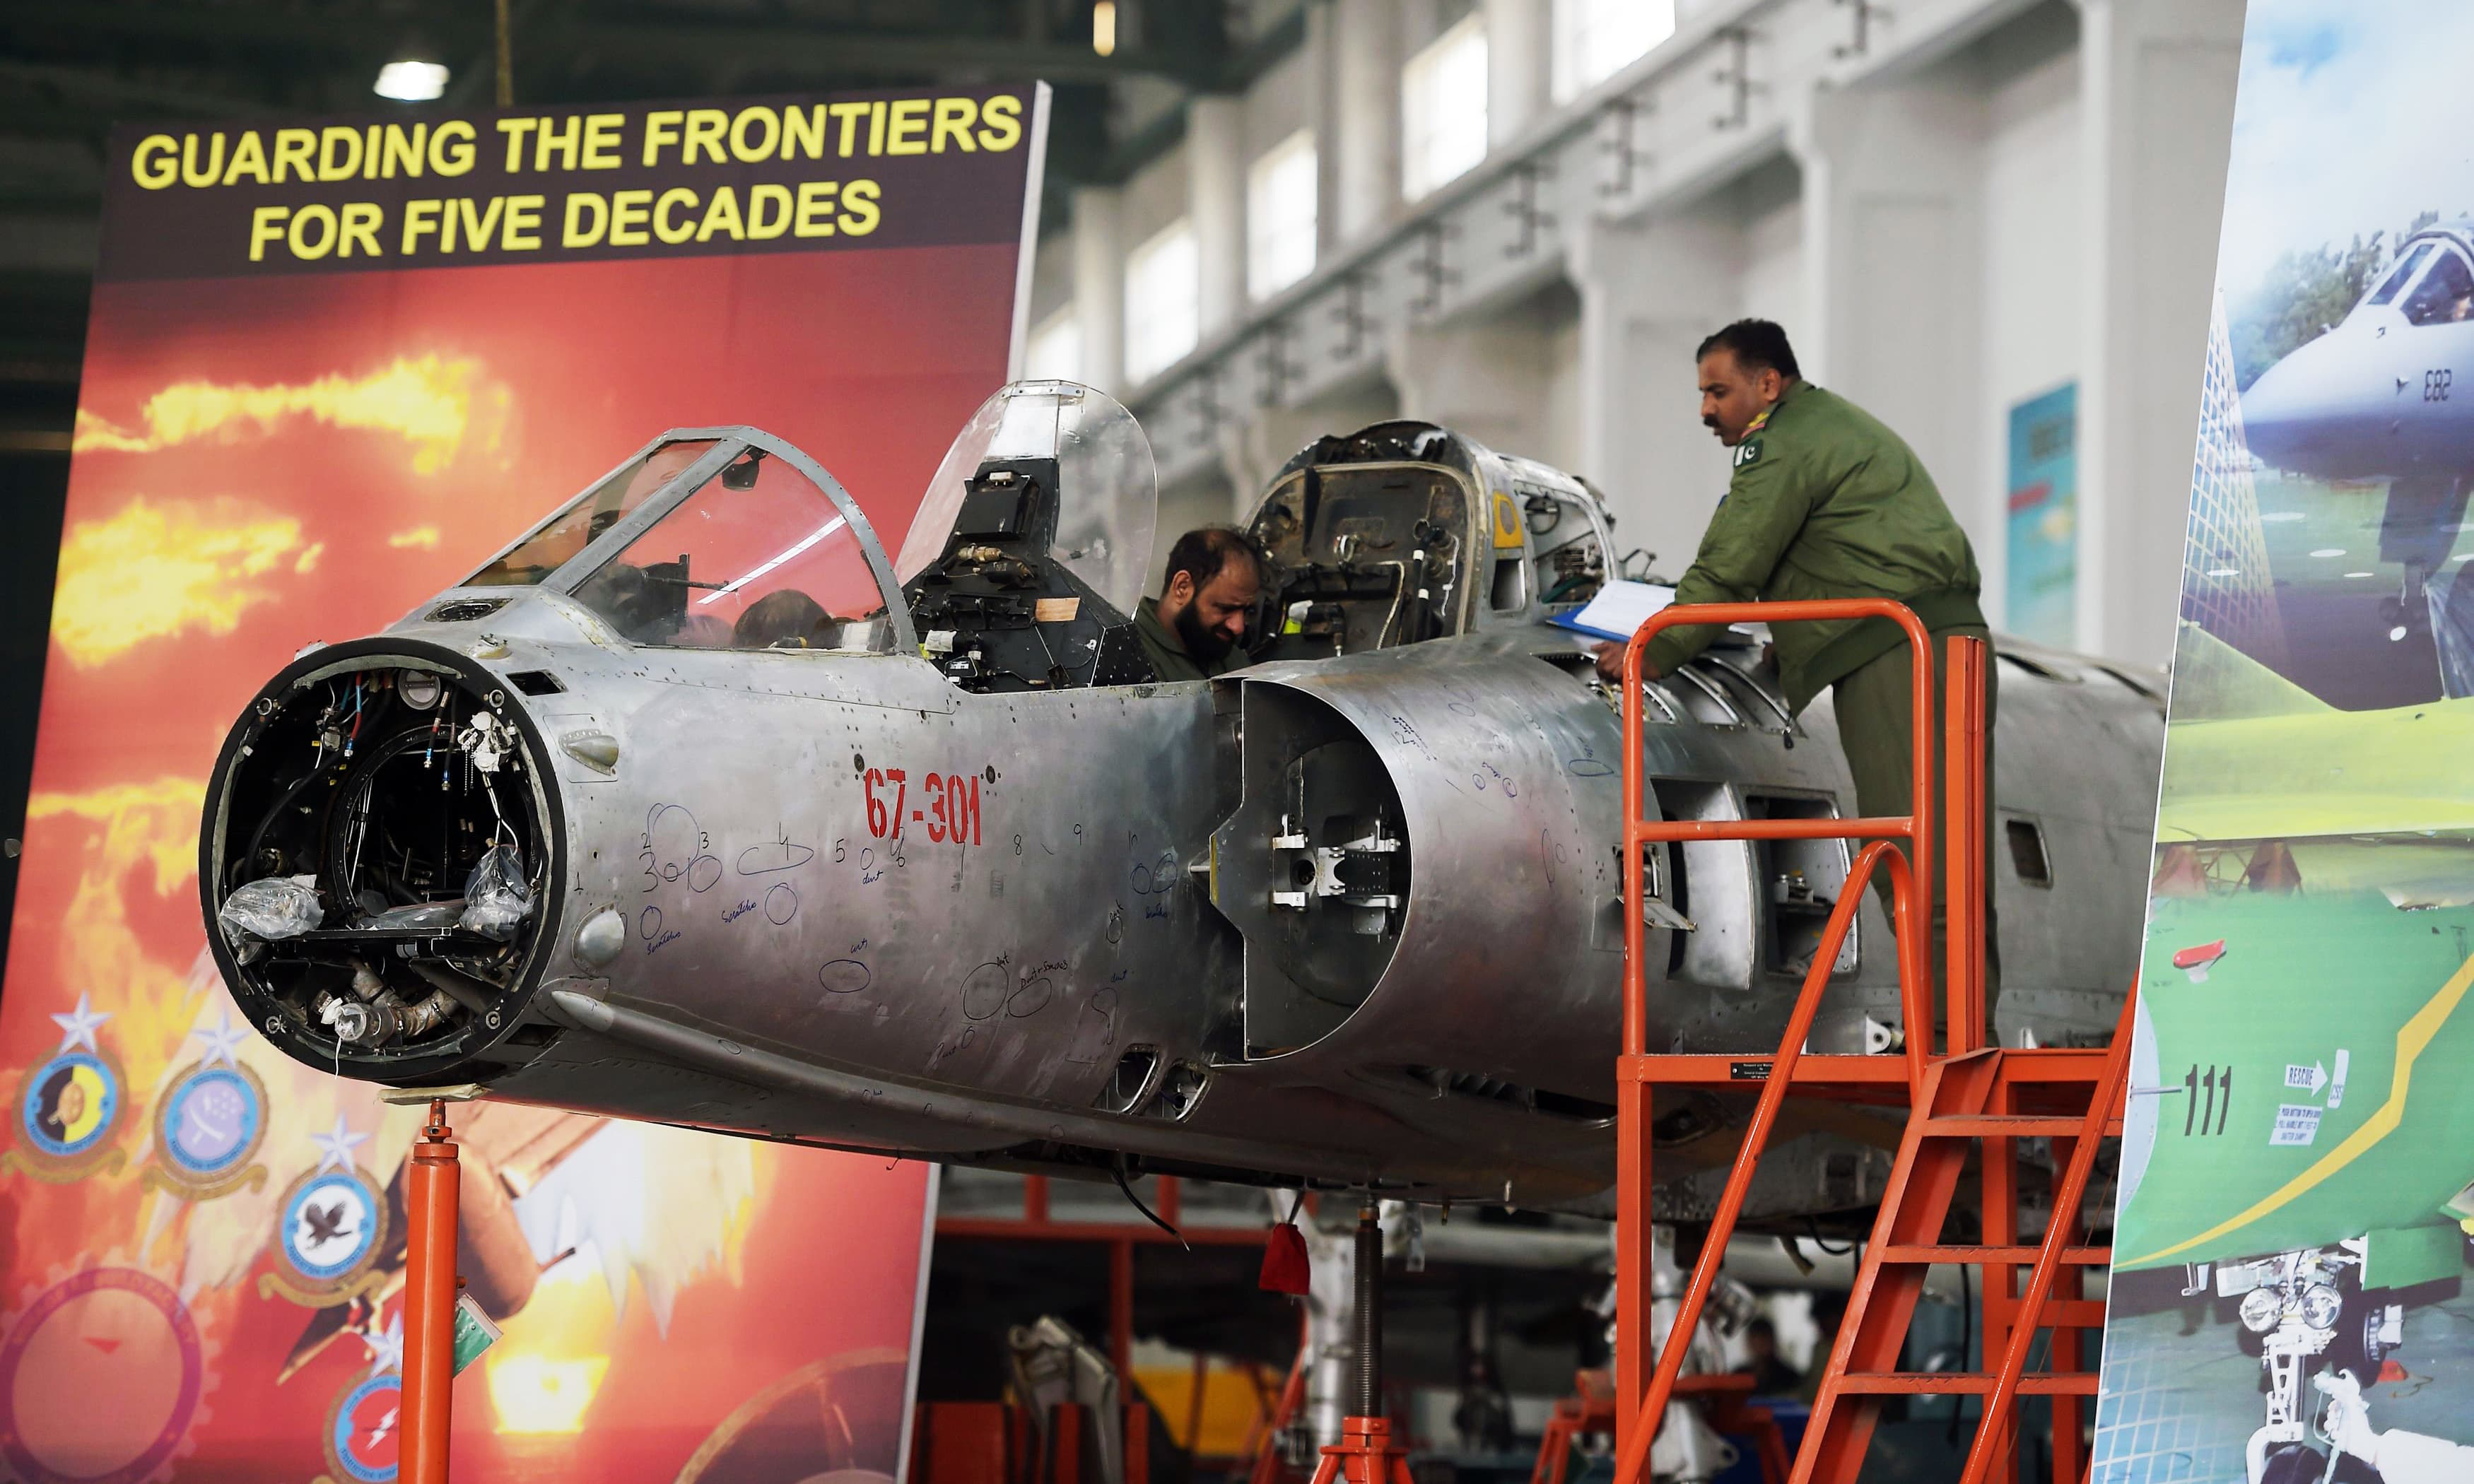 Technicians work on a Mirage aircraft during a full overhaul by PAF at Mirage Rebuild Factory in Kamra. —AFP